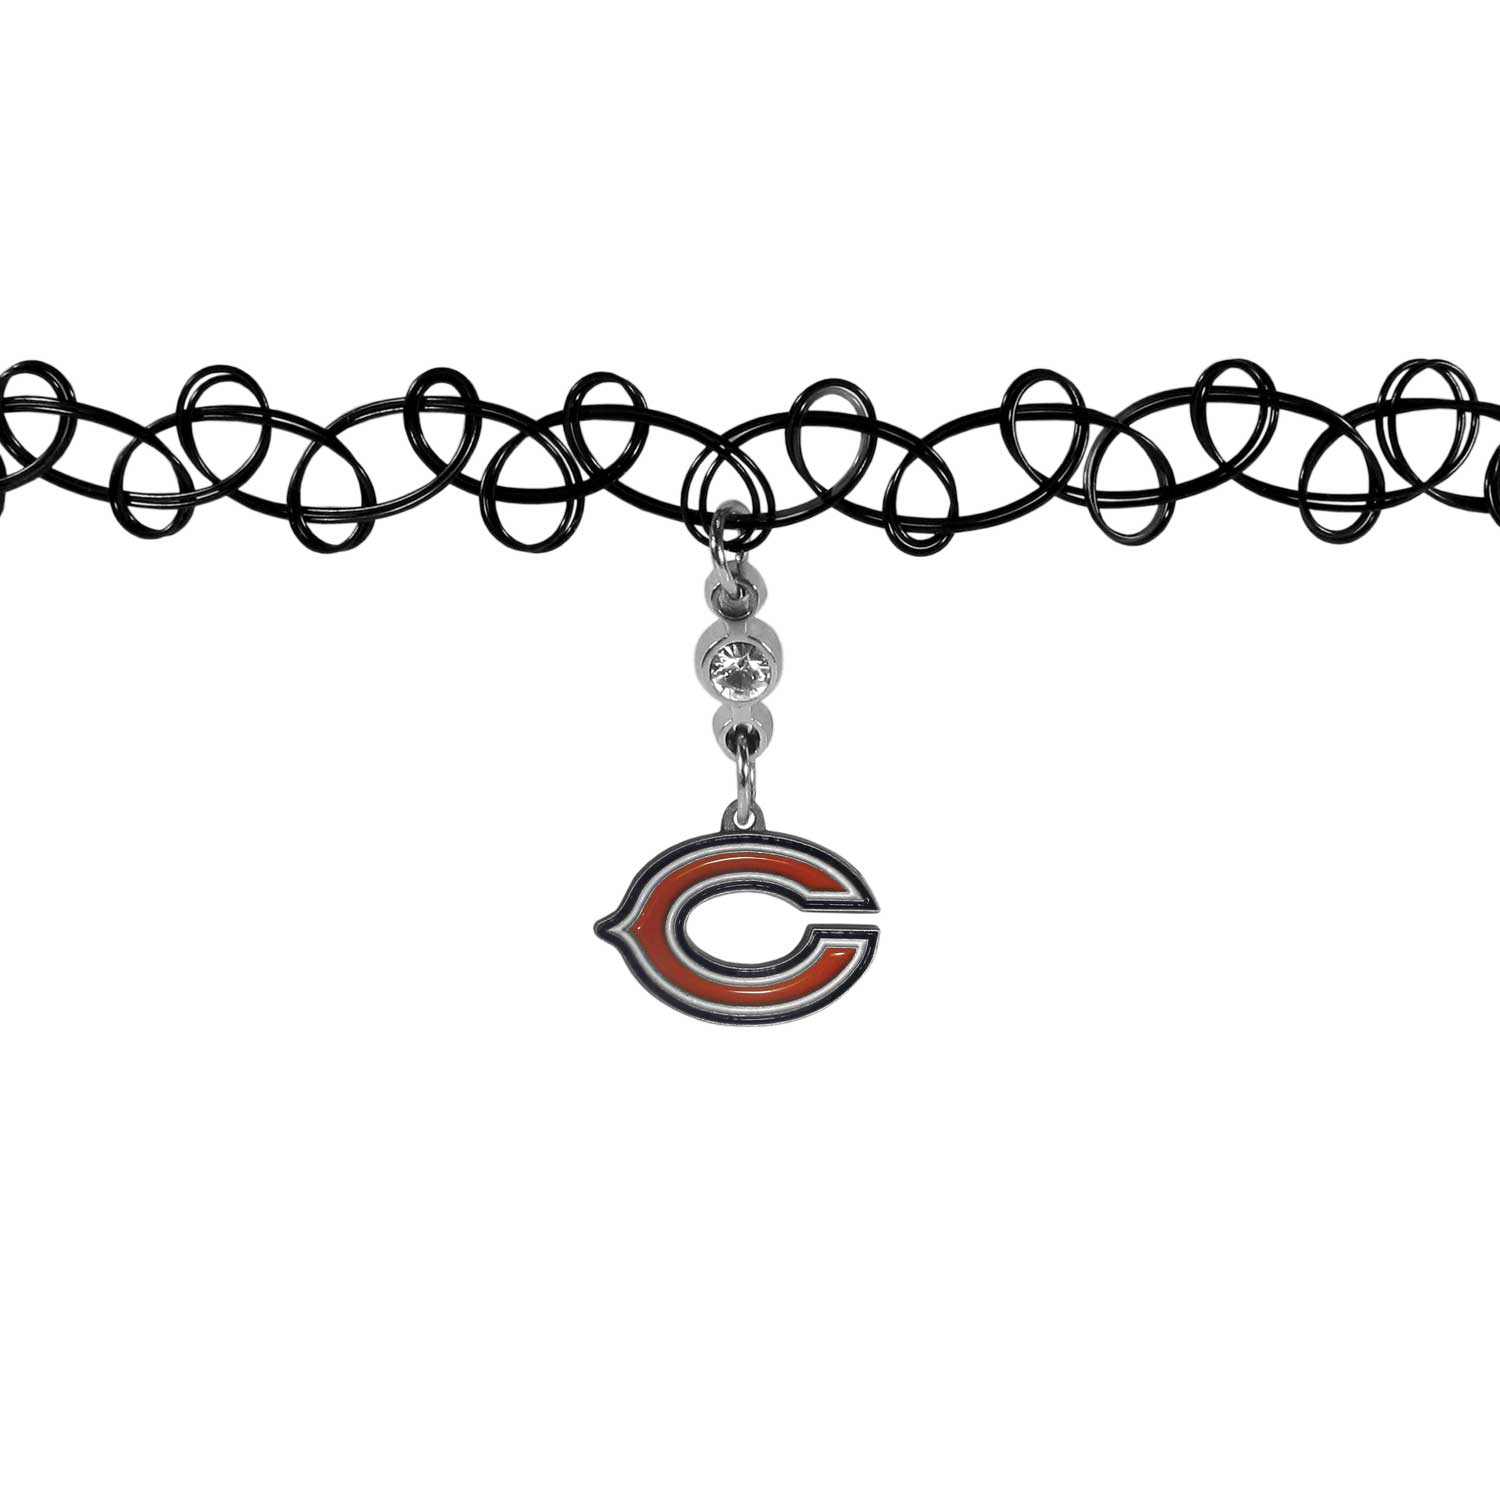 Chicago Bears Knotted Choker - This retro, knotted choker is a cool and unique piece of fan jewelry. The tattoo style choker features a high polish Chicago Bears charm with rhinestone accents.